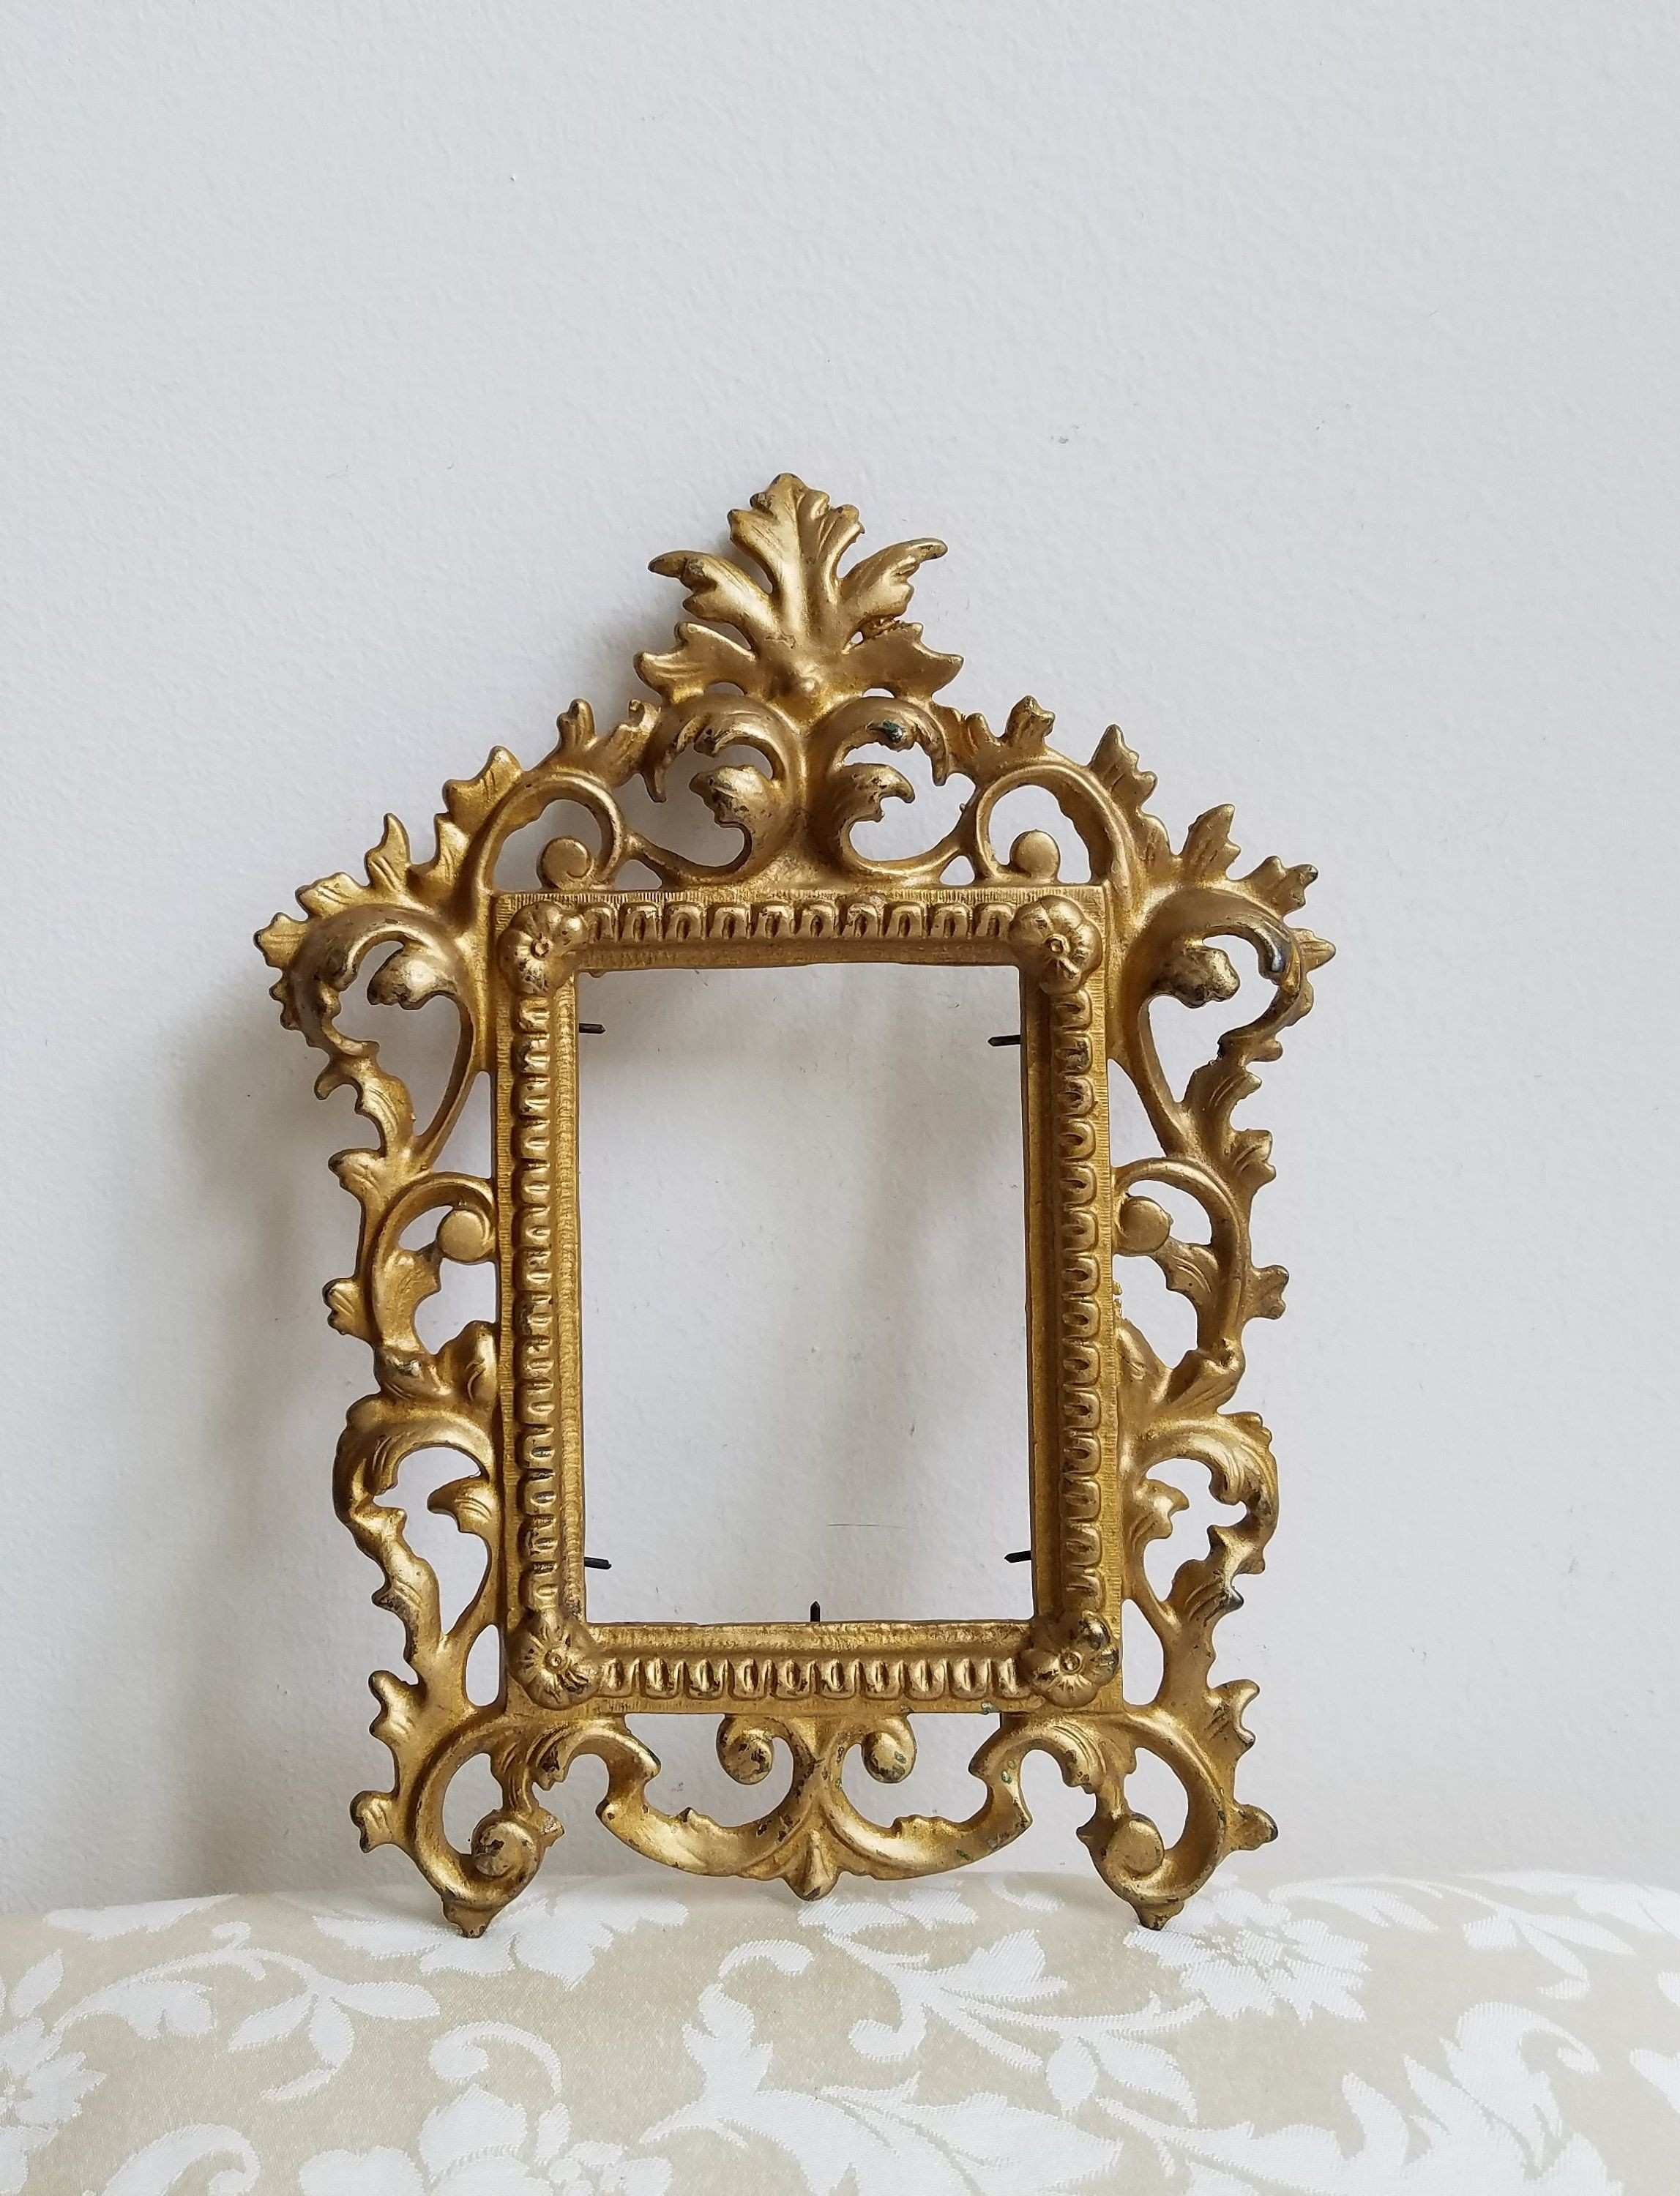 Vintage Ornate Gold Picture Frame Heavy Cast Metal With Fleur de Lis